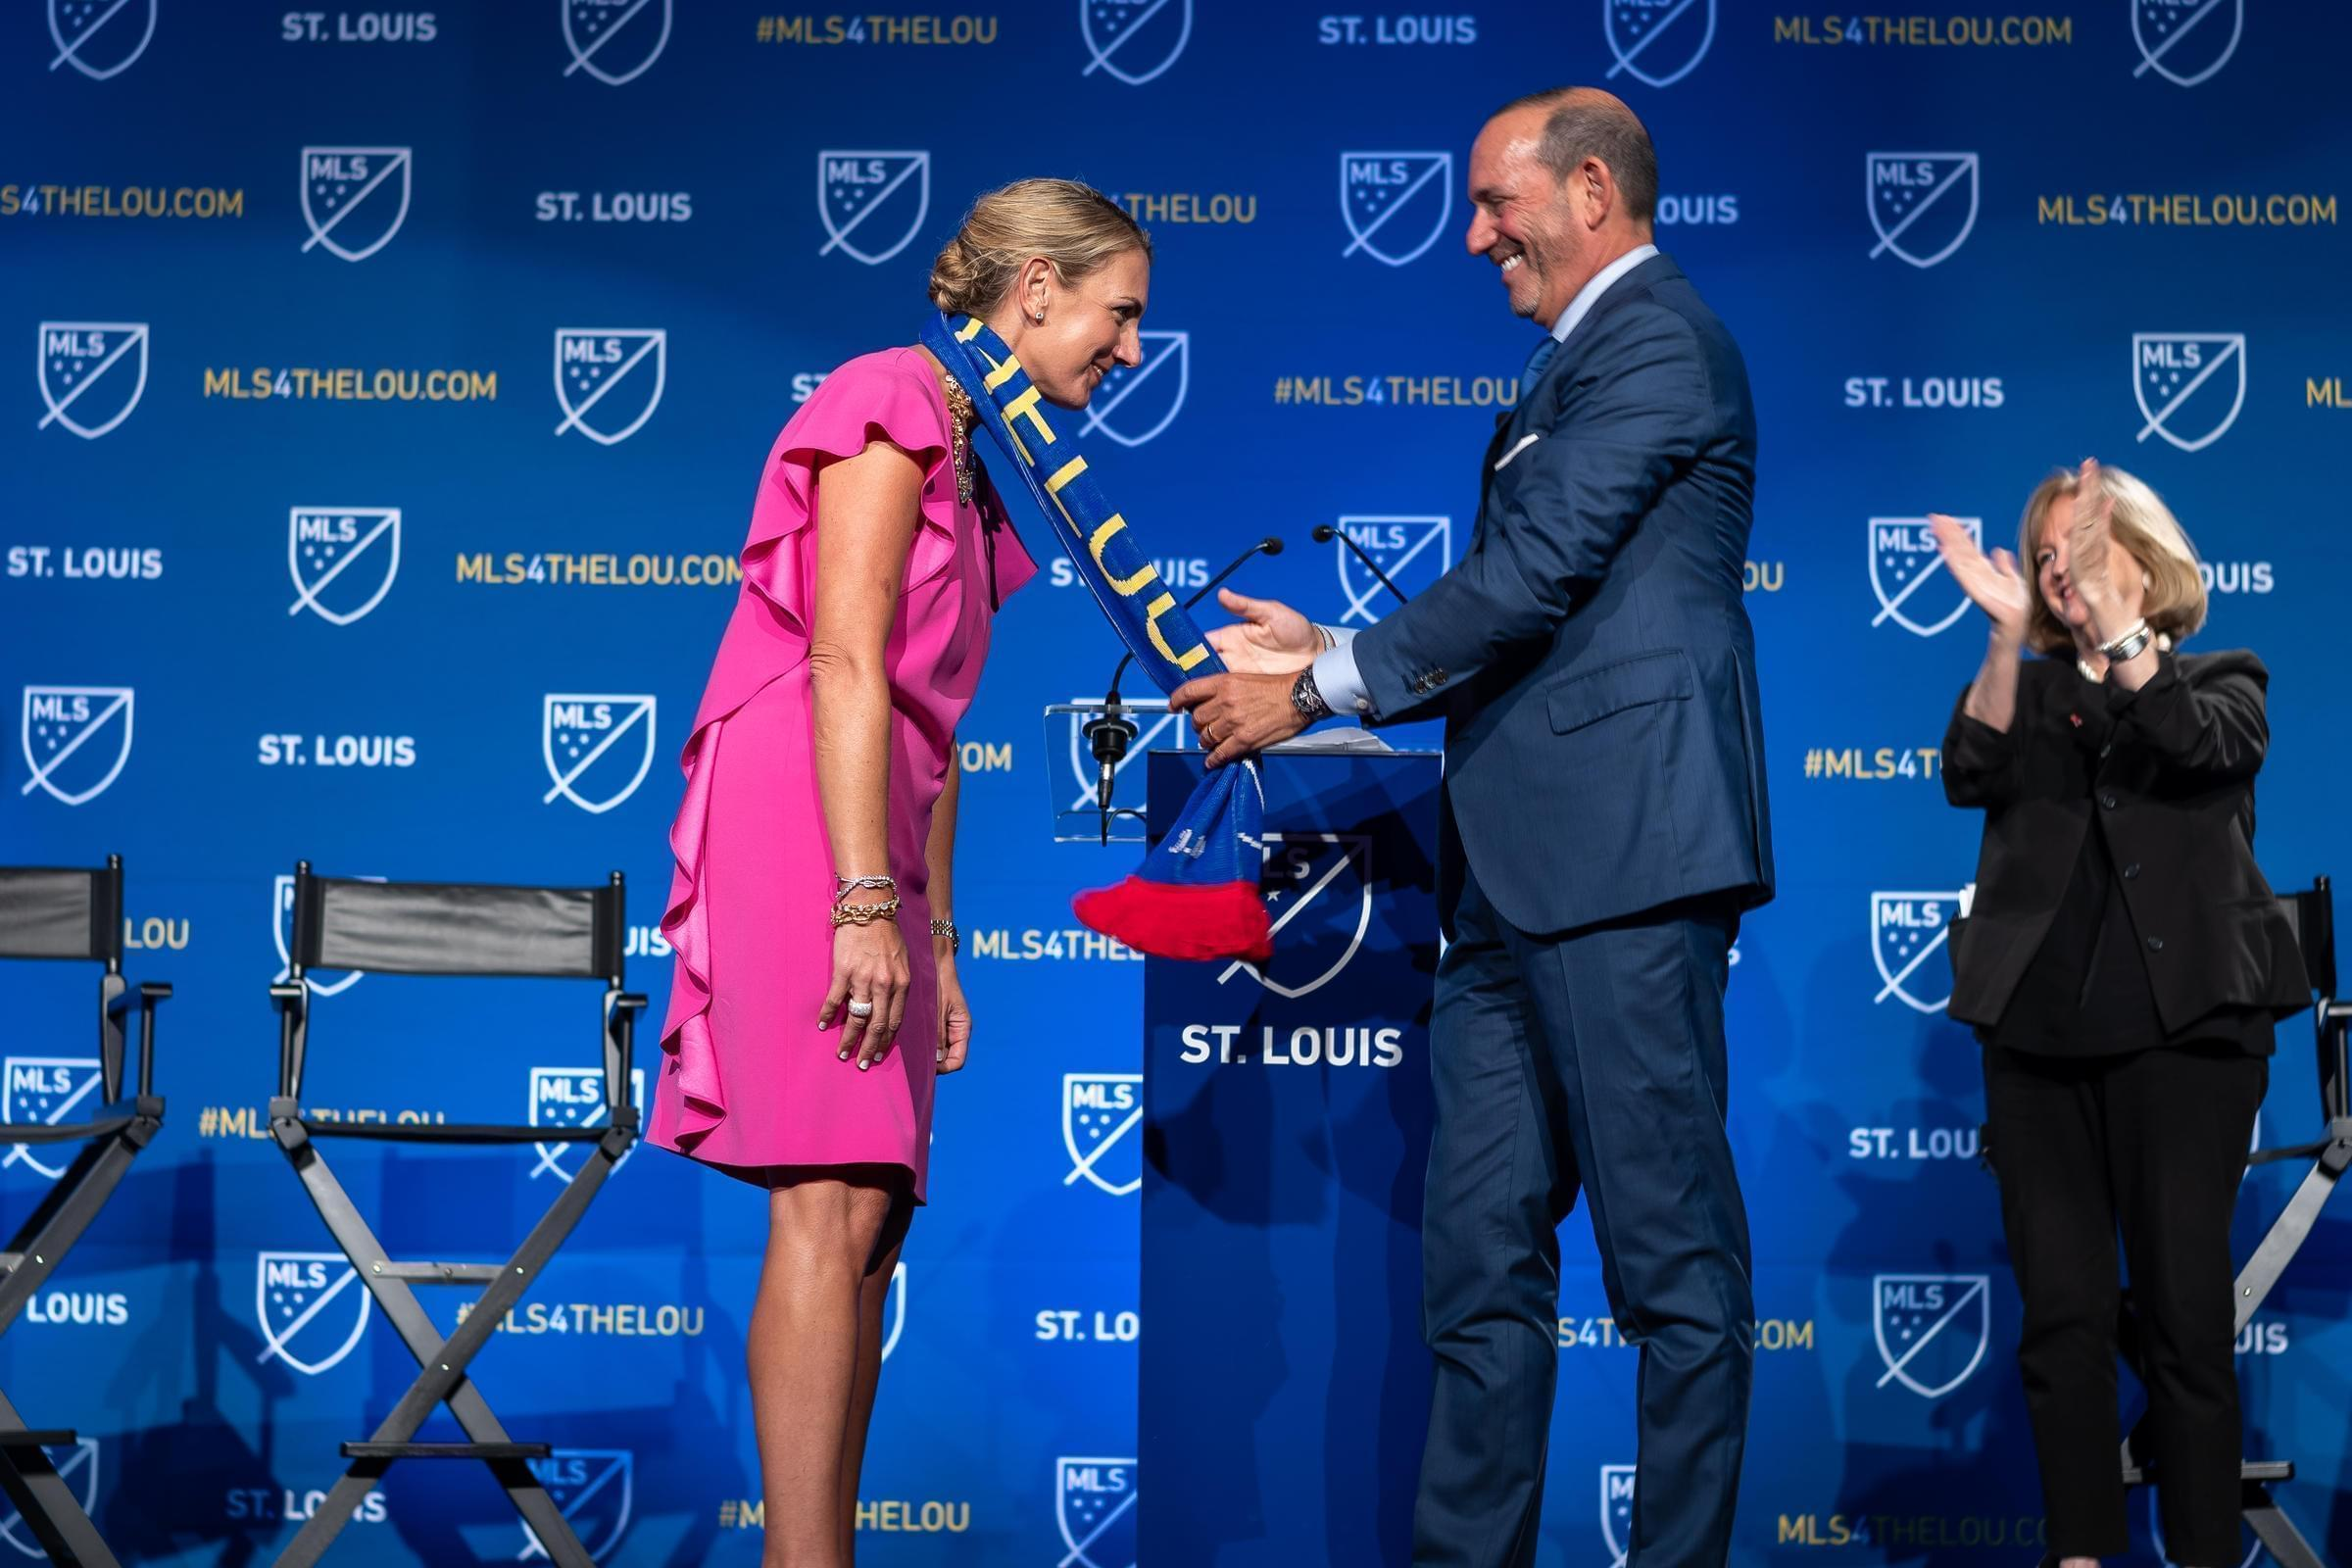 """Major League Soccer Commissioner Don Garber drapes an MLS scarf that reads """"St. Louis"""" over Carolyn Kindle Betz, who leads the ownership group for St. Louis' new professional soccer team."""